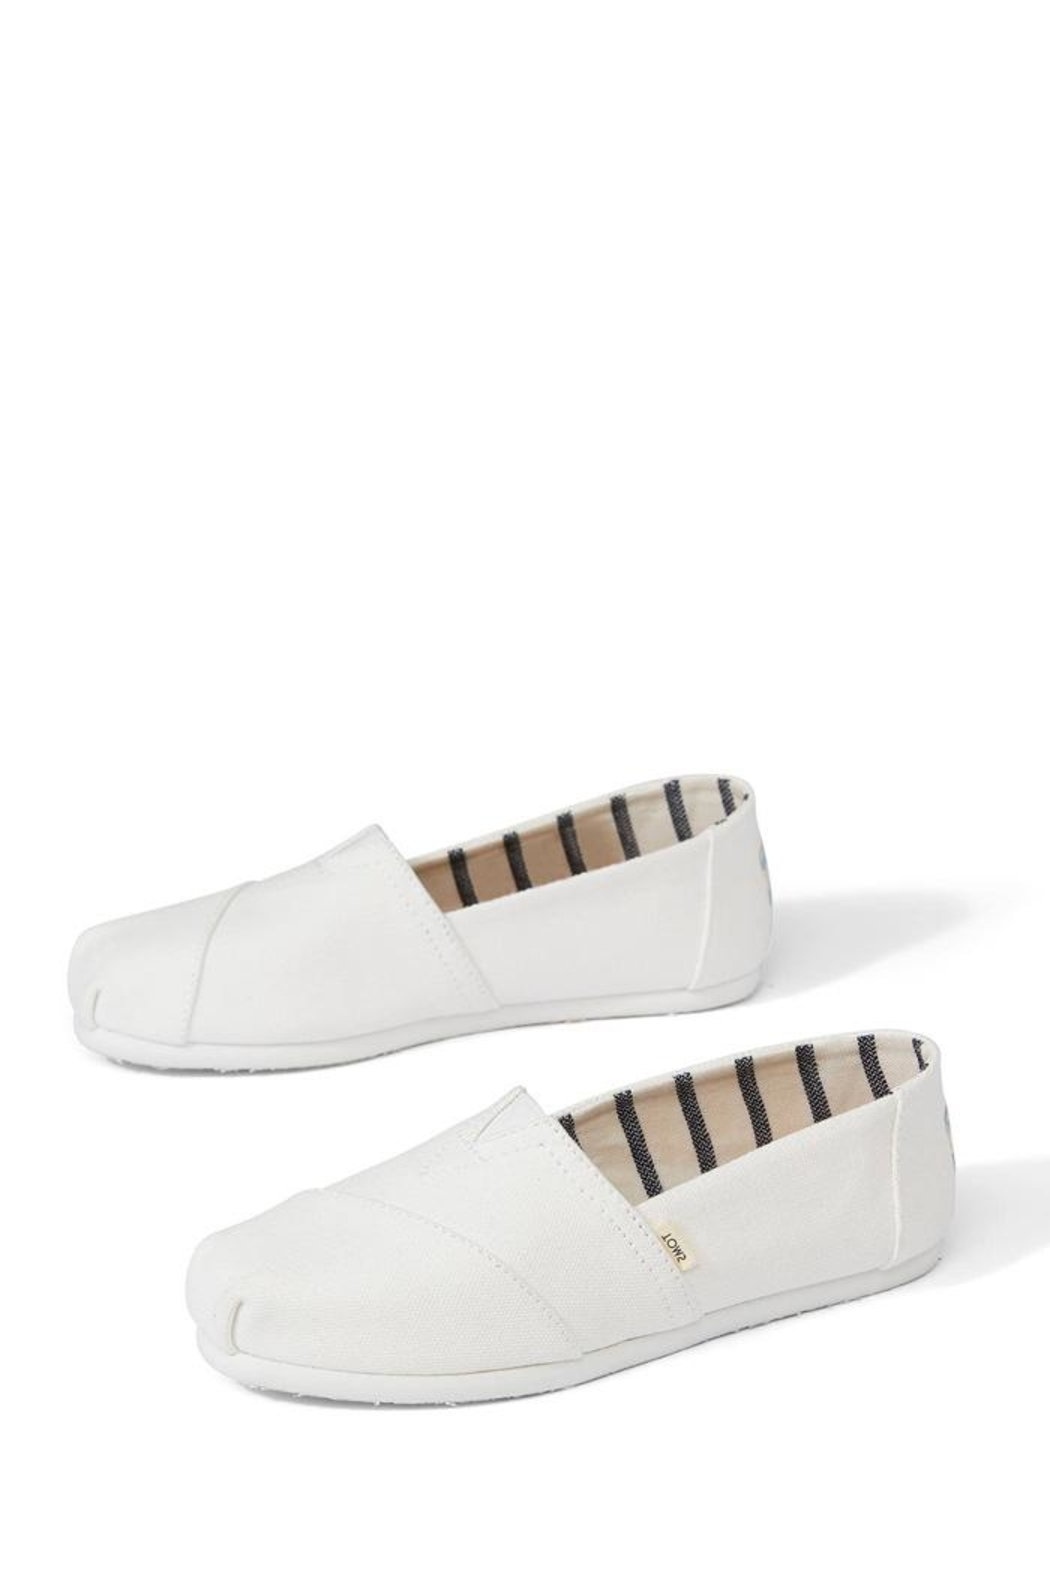 TOMS White Classic Toms - Main Image